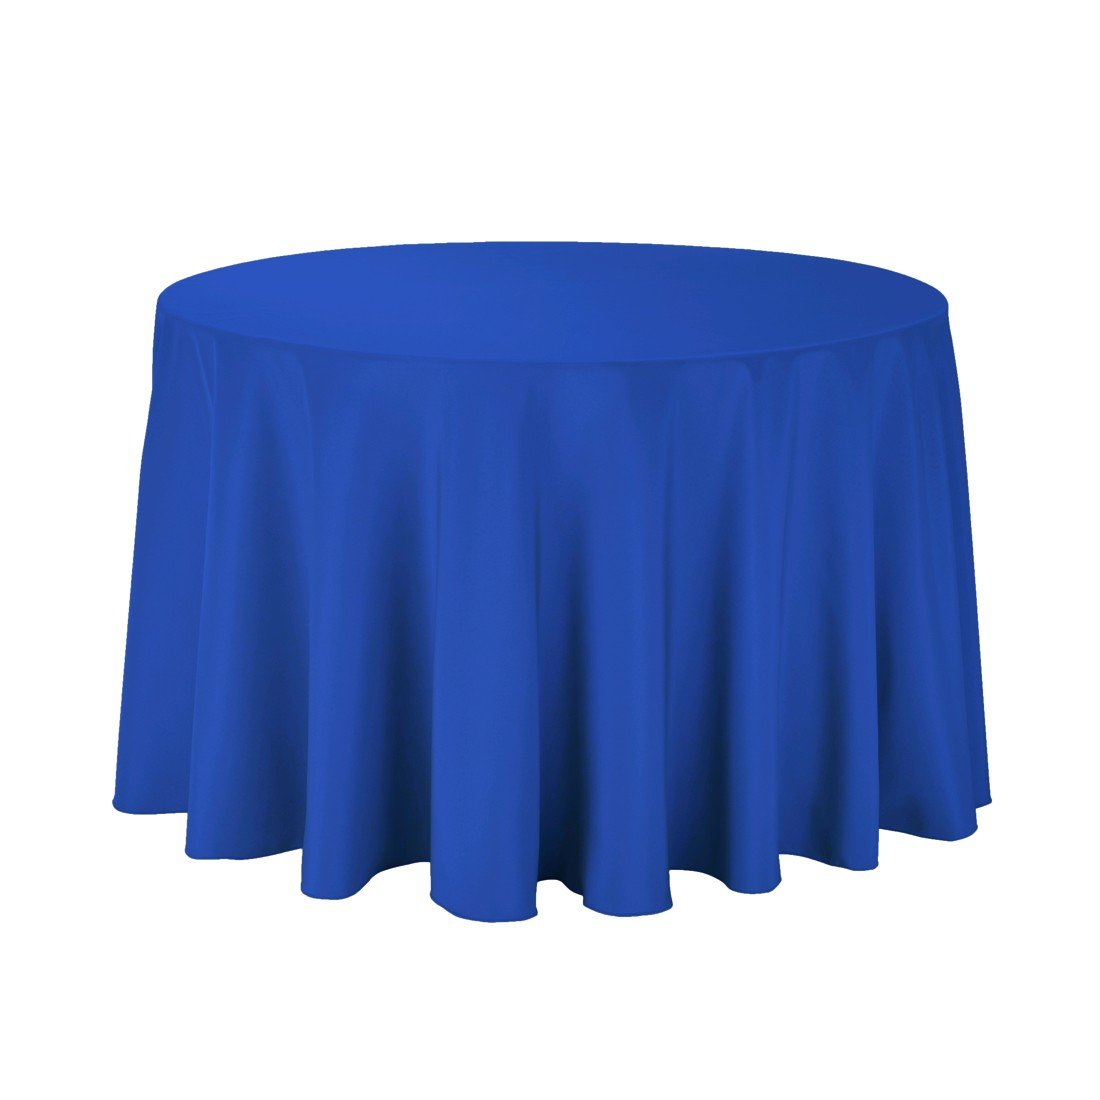 Craft and Party - 10 pcs Round Tablecloth for Home, Party, Wedding or Restaurant Use. (Royal Blue, 108'' Round)